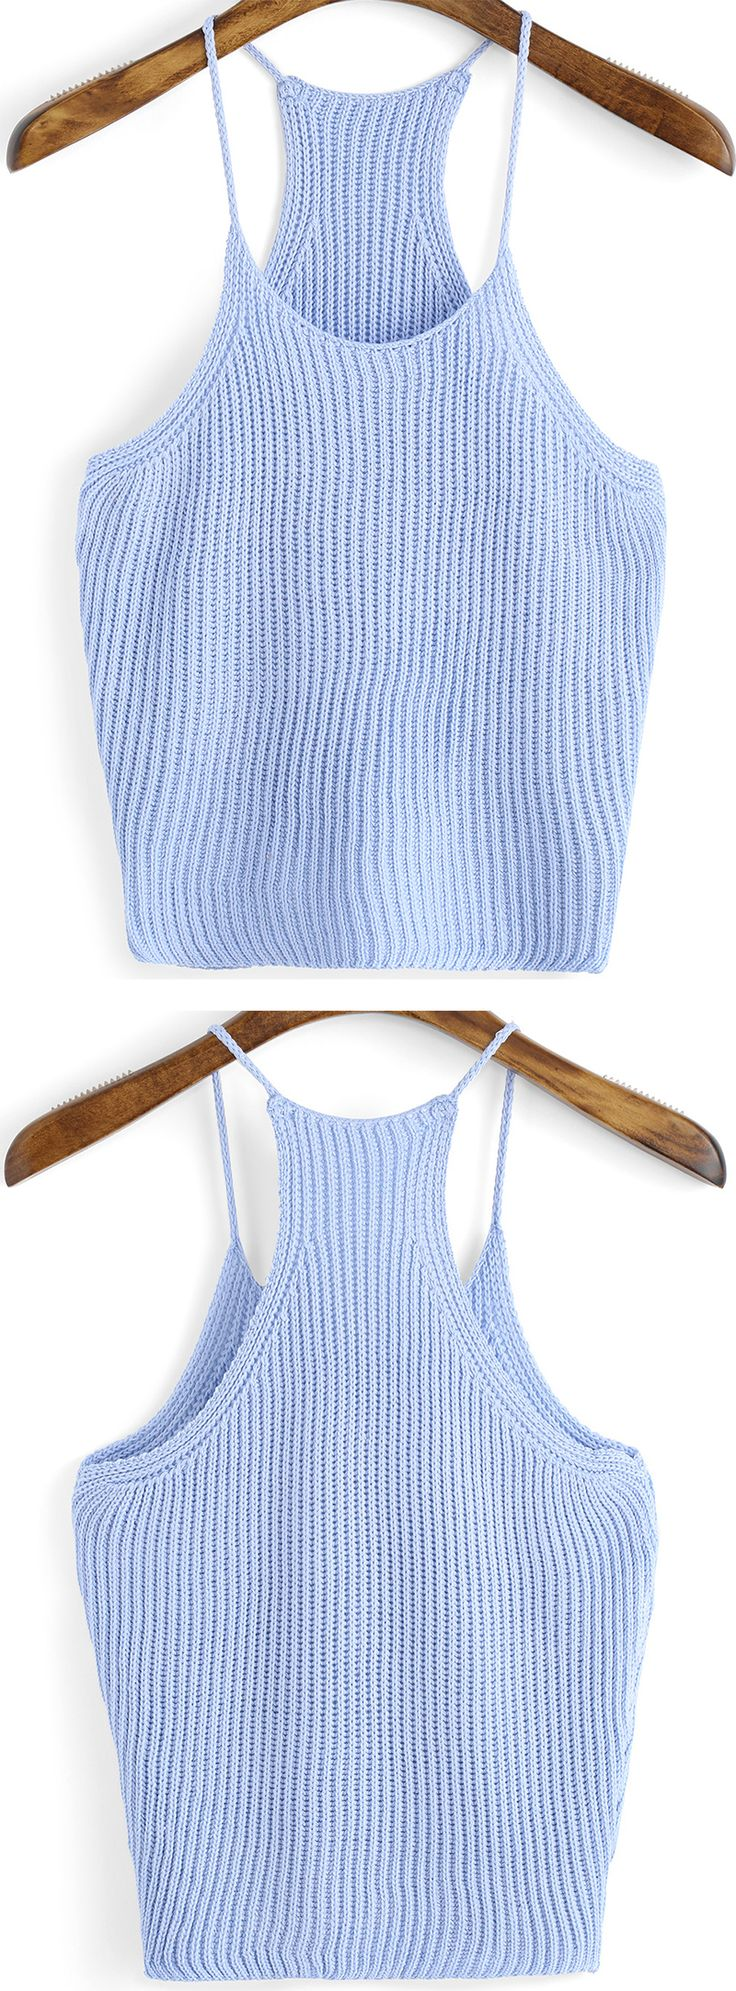 Super soft knit tank top for hot summer. Pretty light blue vest make a peace & cool summer. Best for summer street style.Find Blue Spaghetti Strap Knit Cami Top at romwe.com .